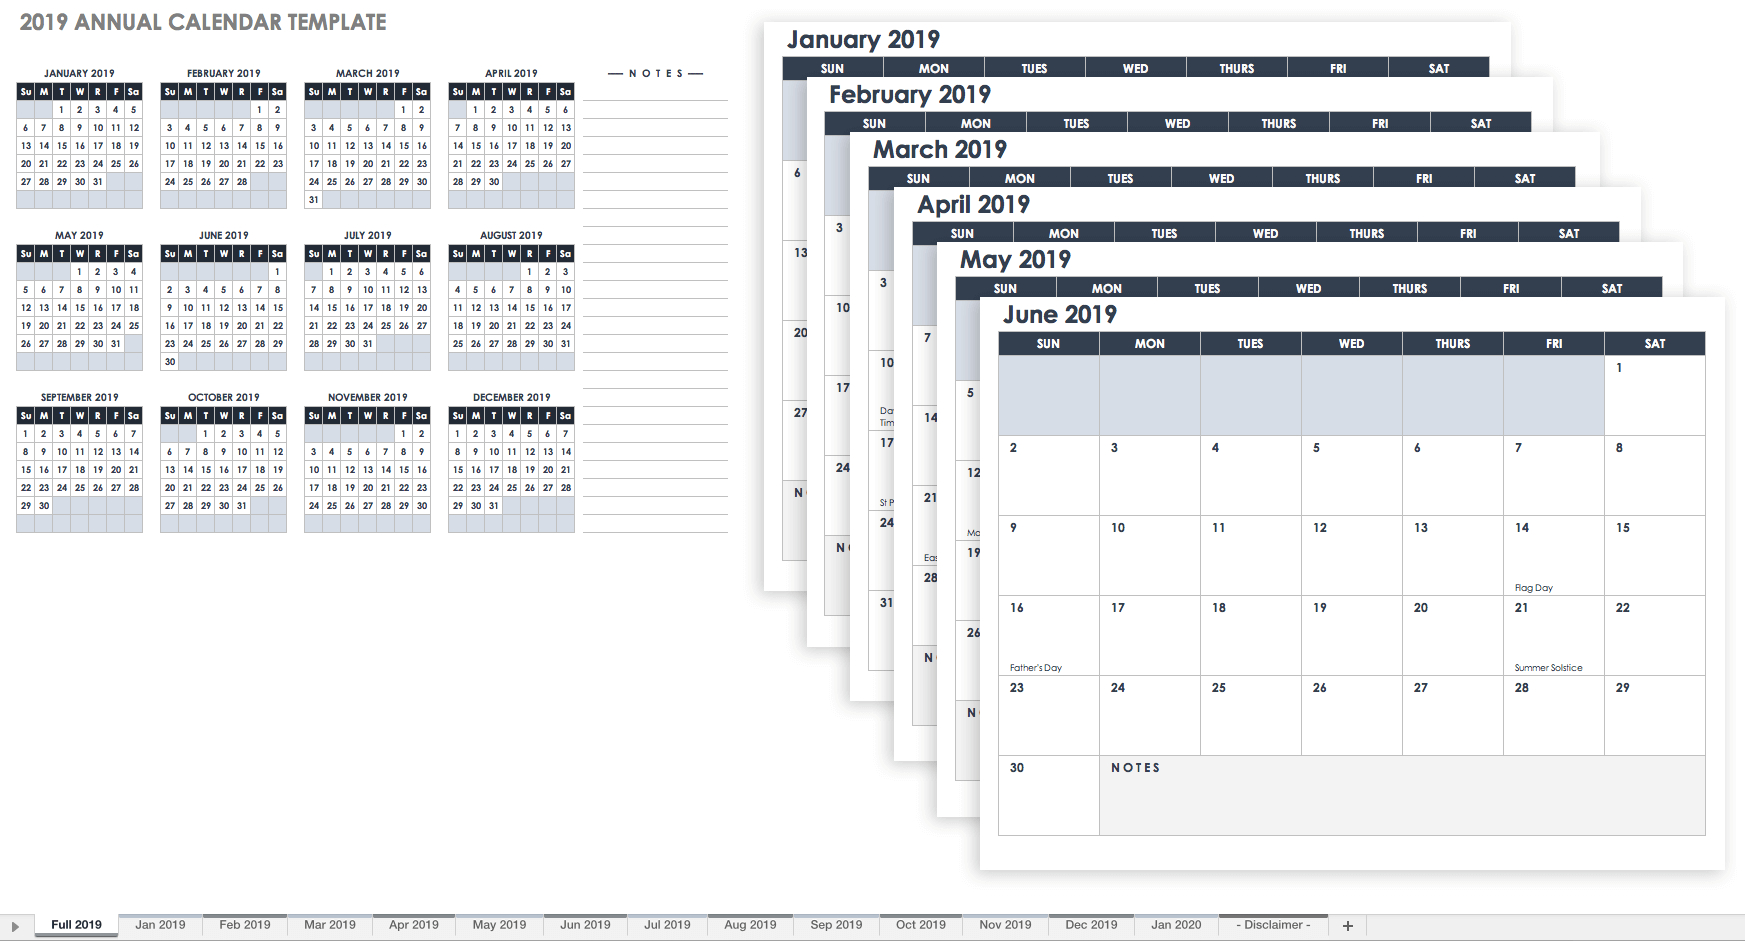 15 Free Monthly Calendar Templates | Smartsheet for Monthly Calendar Printable Template Notes Column